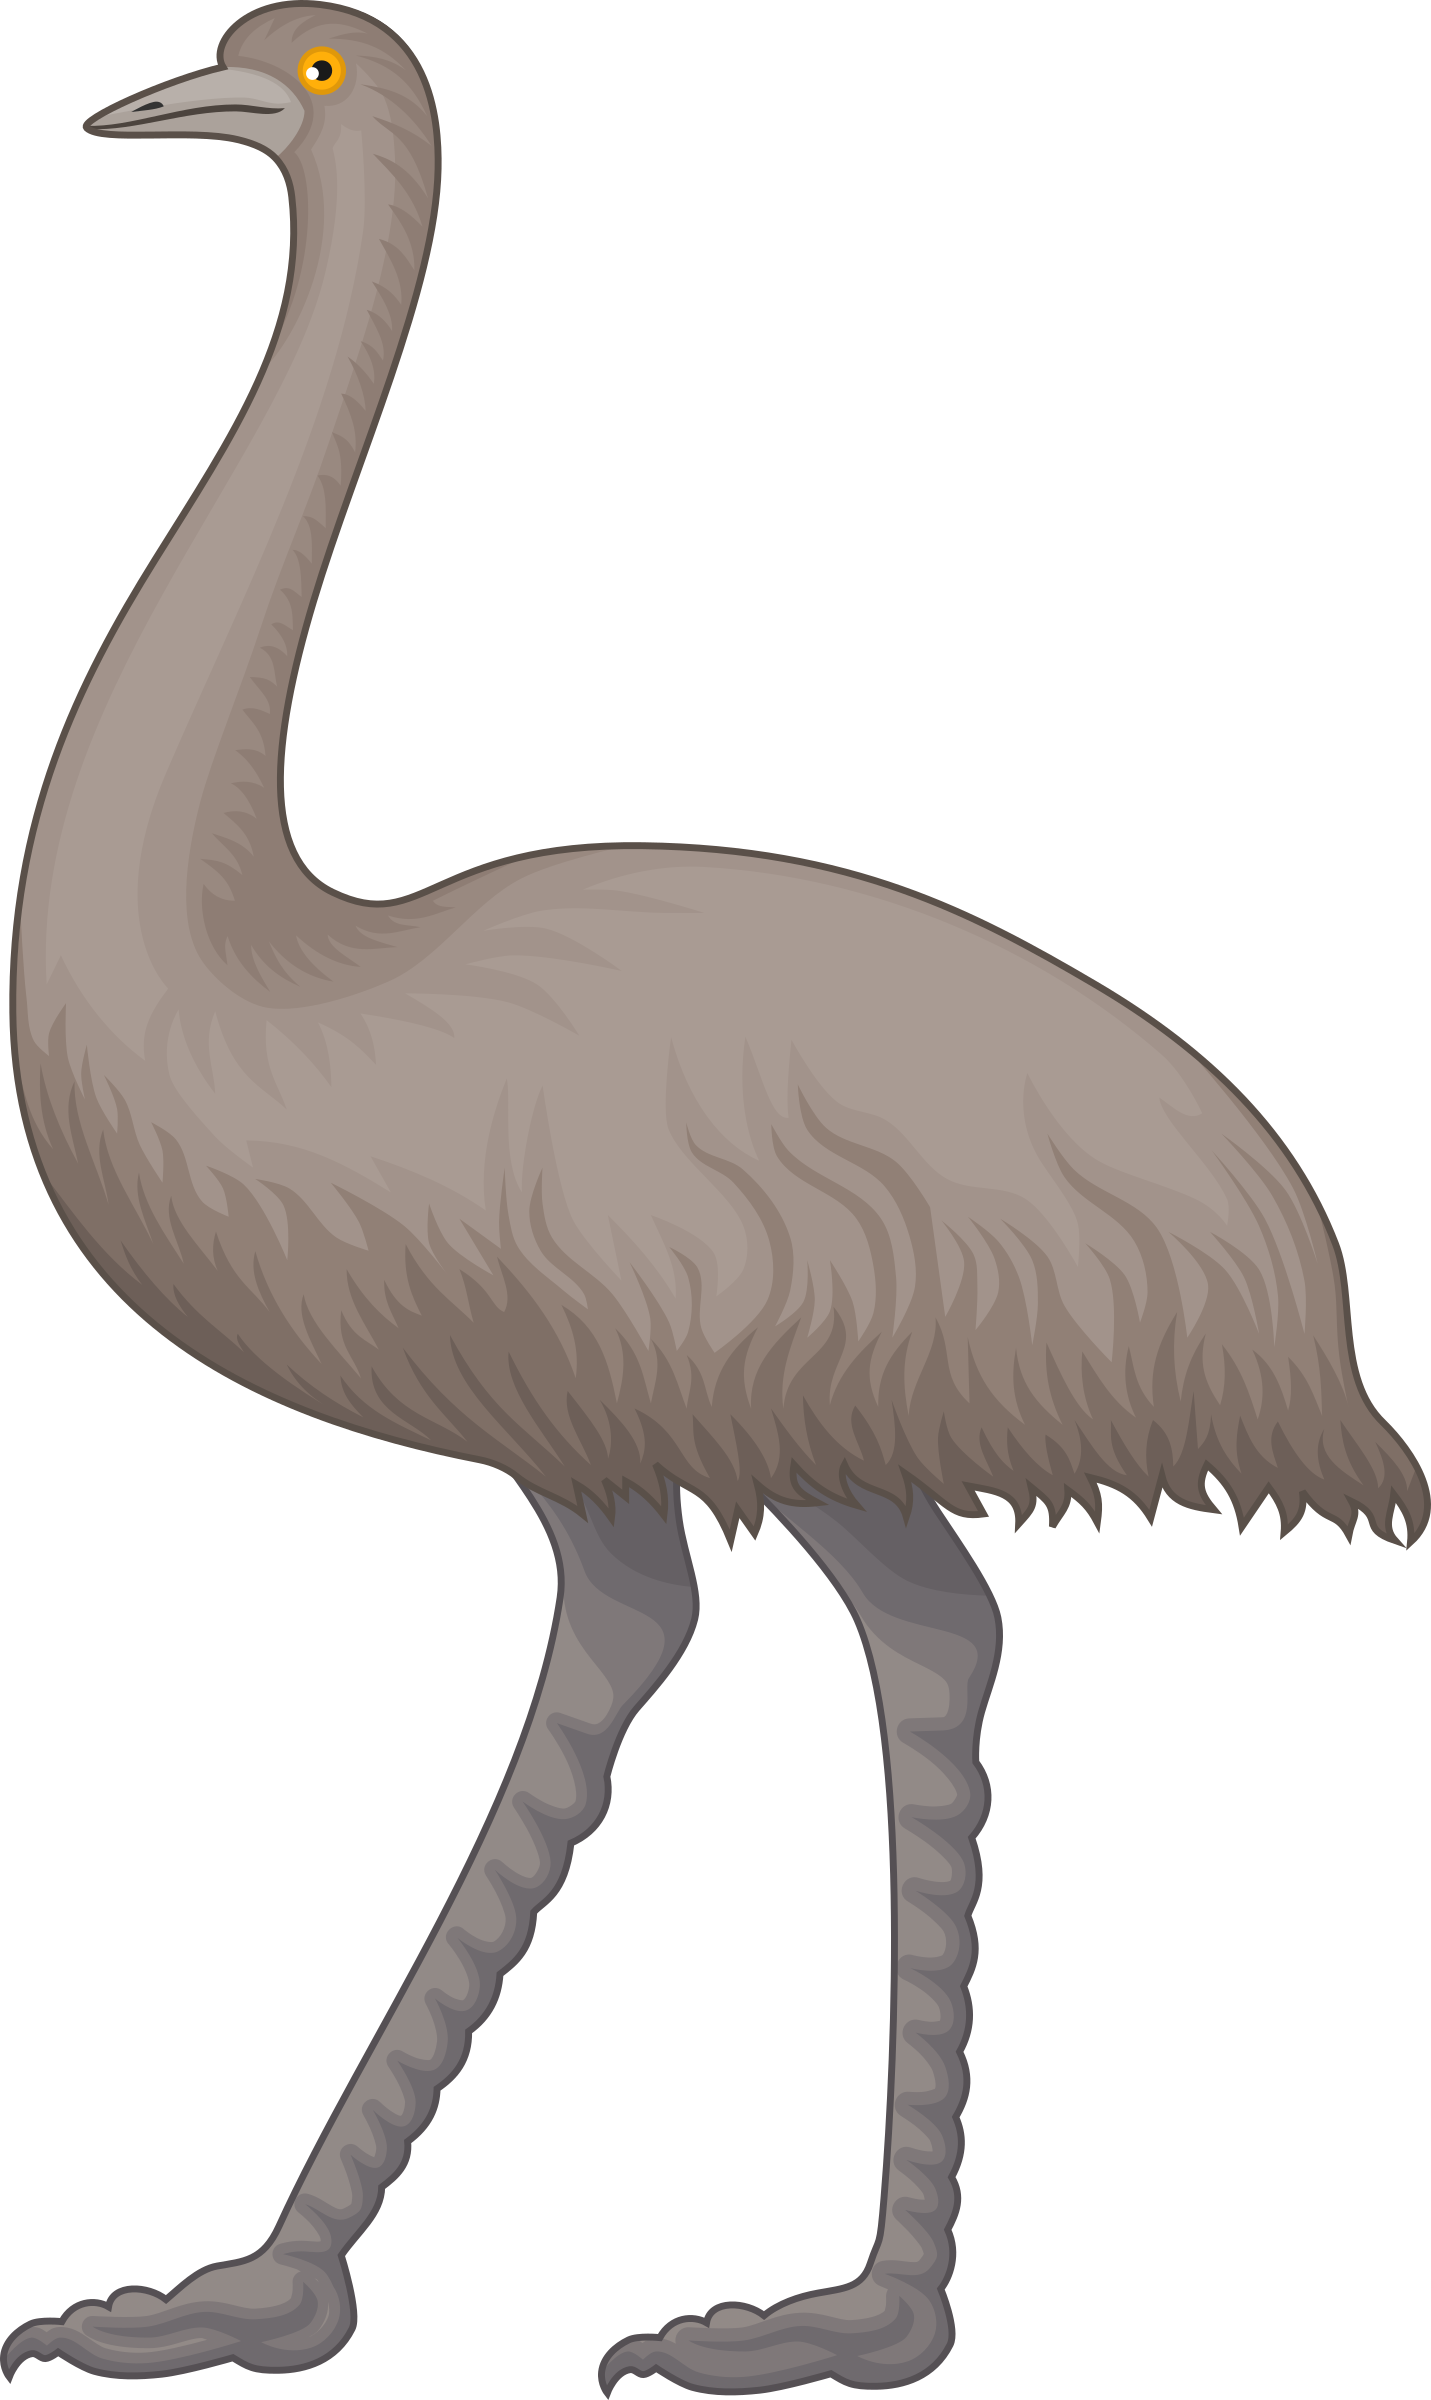 jpg library library Collection of free Emew clipart animal australia